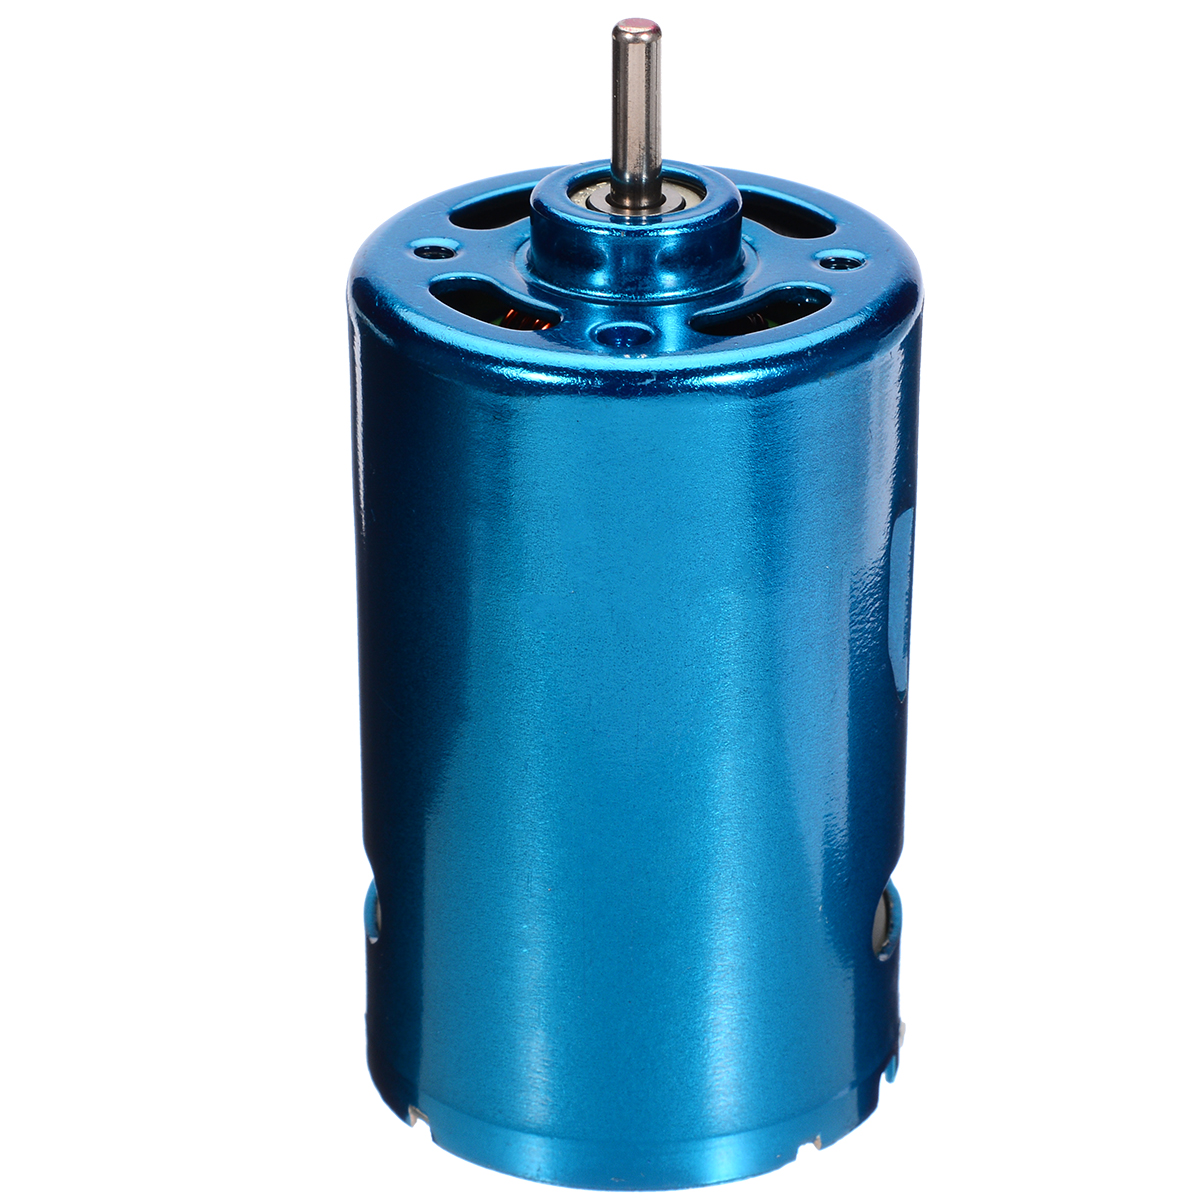 High Accuracy RS-<font><b>550</b></font> <font><b>Motor</b></font> DC 12V 24V 30000 RPM High Speed Large Torque Low Noise with Wear Resistance For RC Car Boat Model image